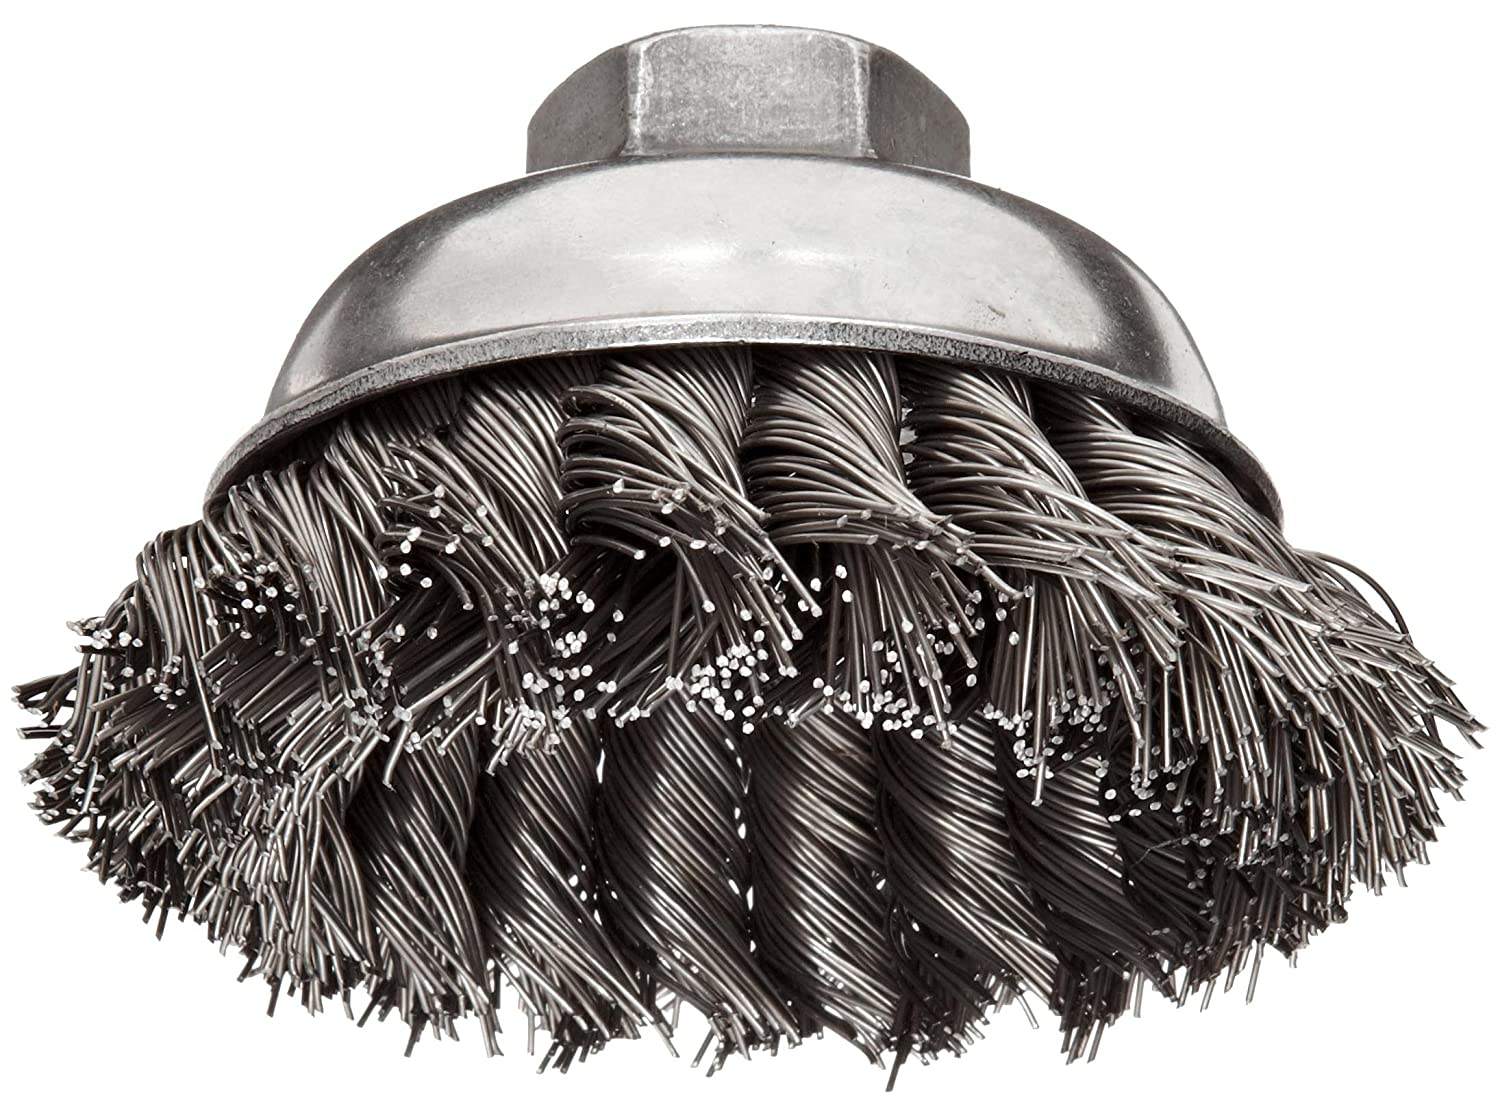 "Weiler Wire Cup Brush, Threaded Hole, Steel, Partial Twist Knotted, Single Row, 3-1/2"" Diameter, 0.023"" Wire Diameter, 5/8""-11 Arbor, 7/8"" Bristle Length, 13000 rpm (Pack of 1)"